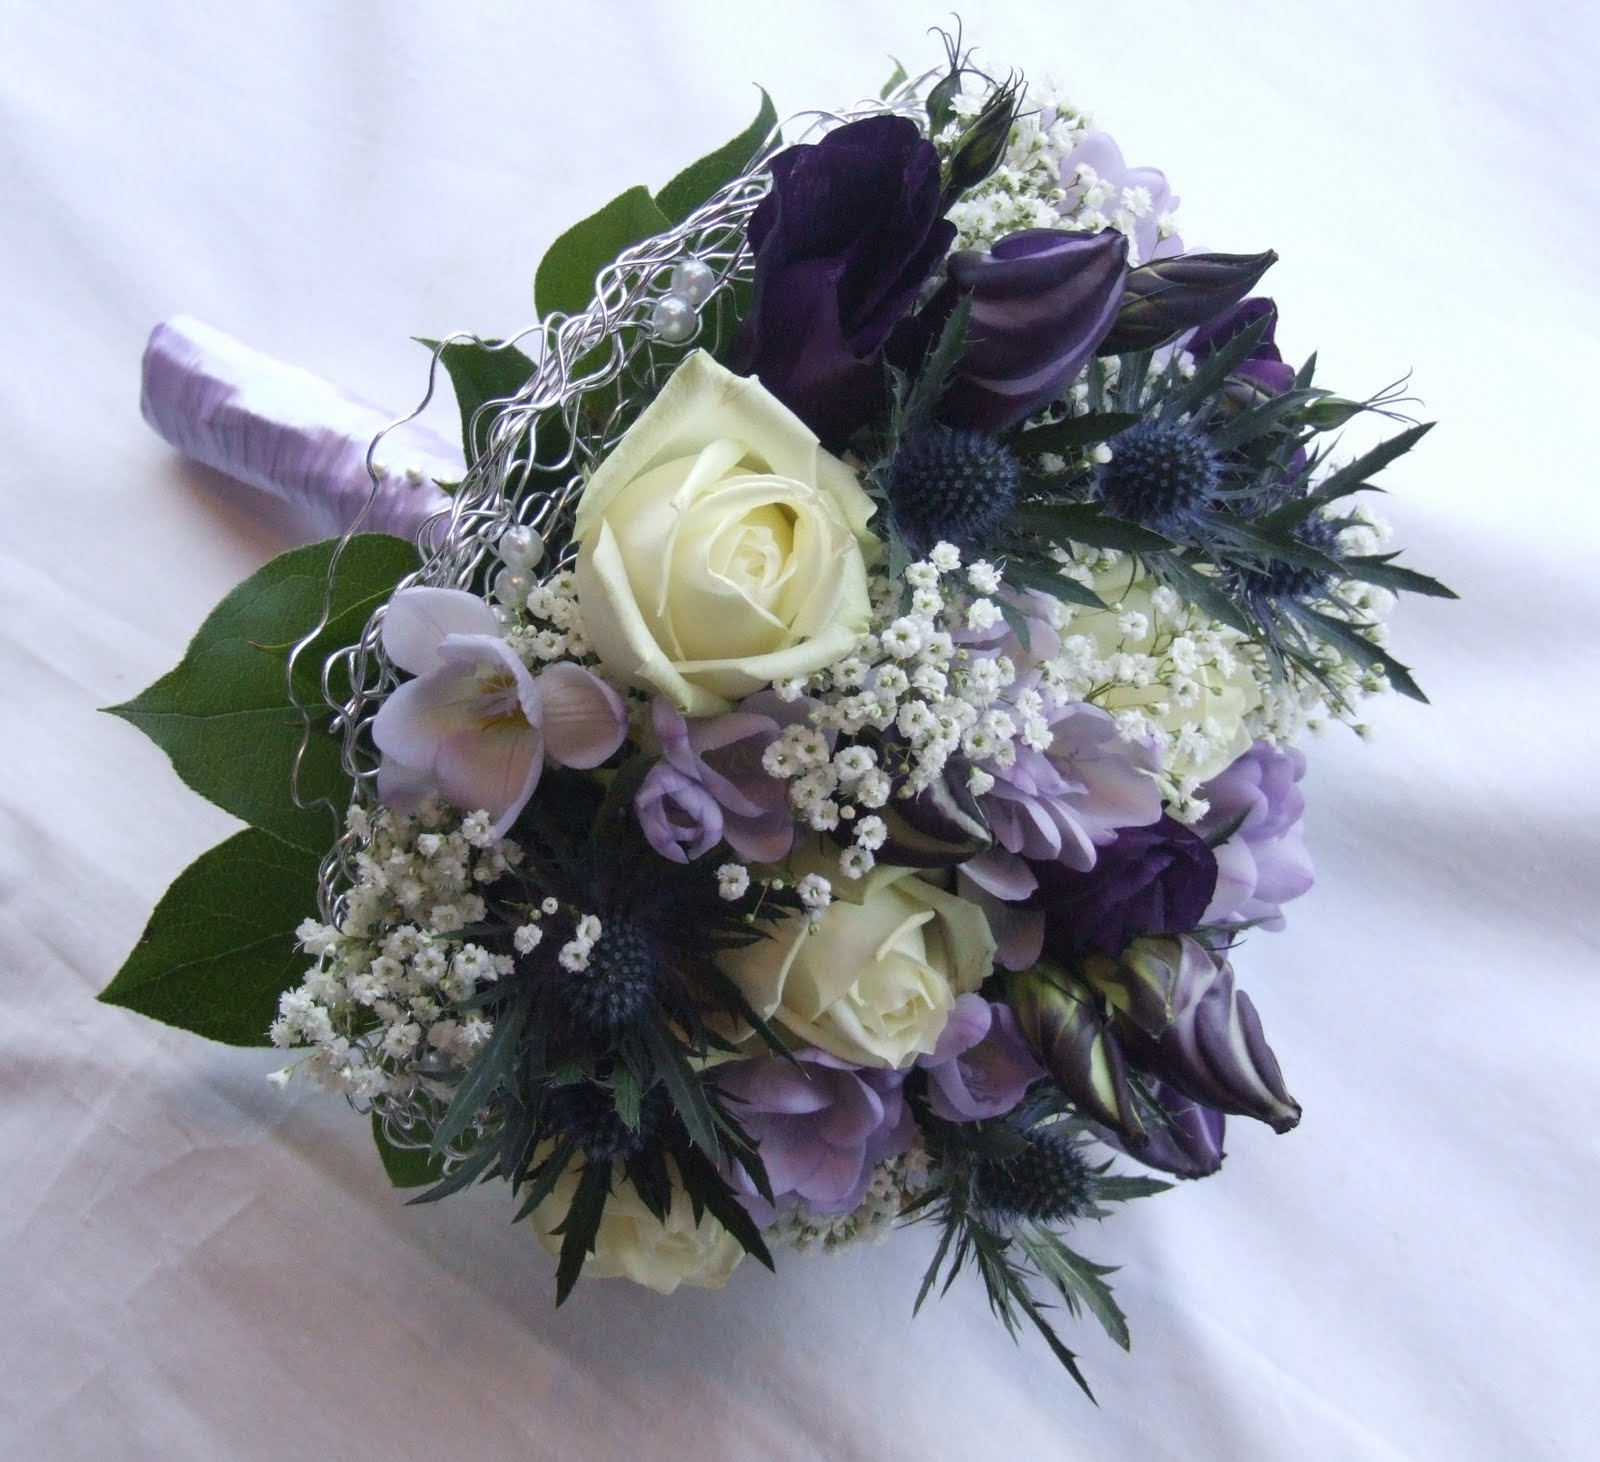 Wedding Flowers Lilac: RJ's Florist: Purple, Lilac And Ivory Wedding Flowers